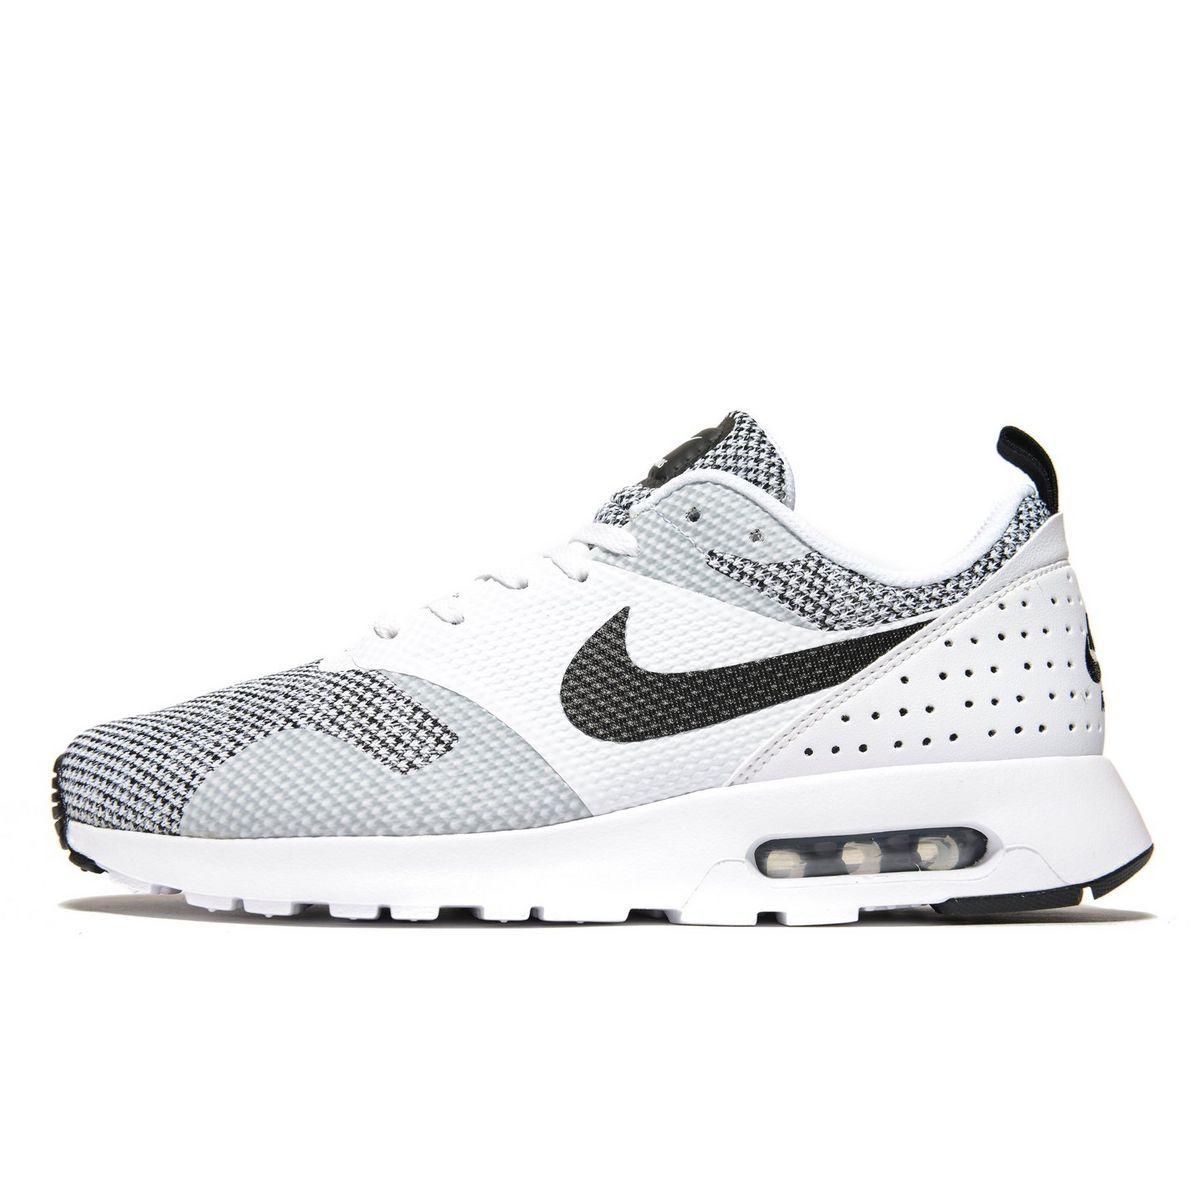 Nike Air Max Tavas - Shop online for Nike Air Max Tavas with JD Sports, the  UK's leading sports fashion retailer.